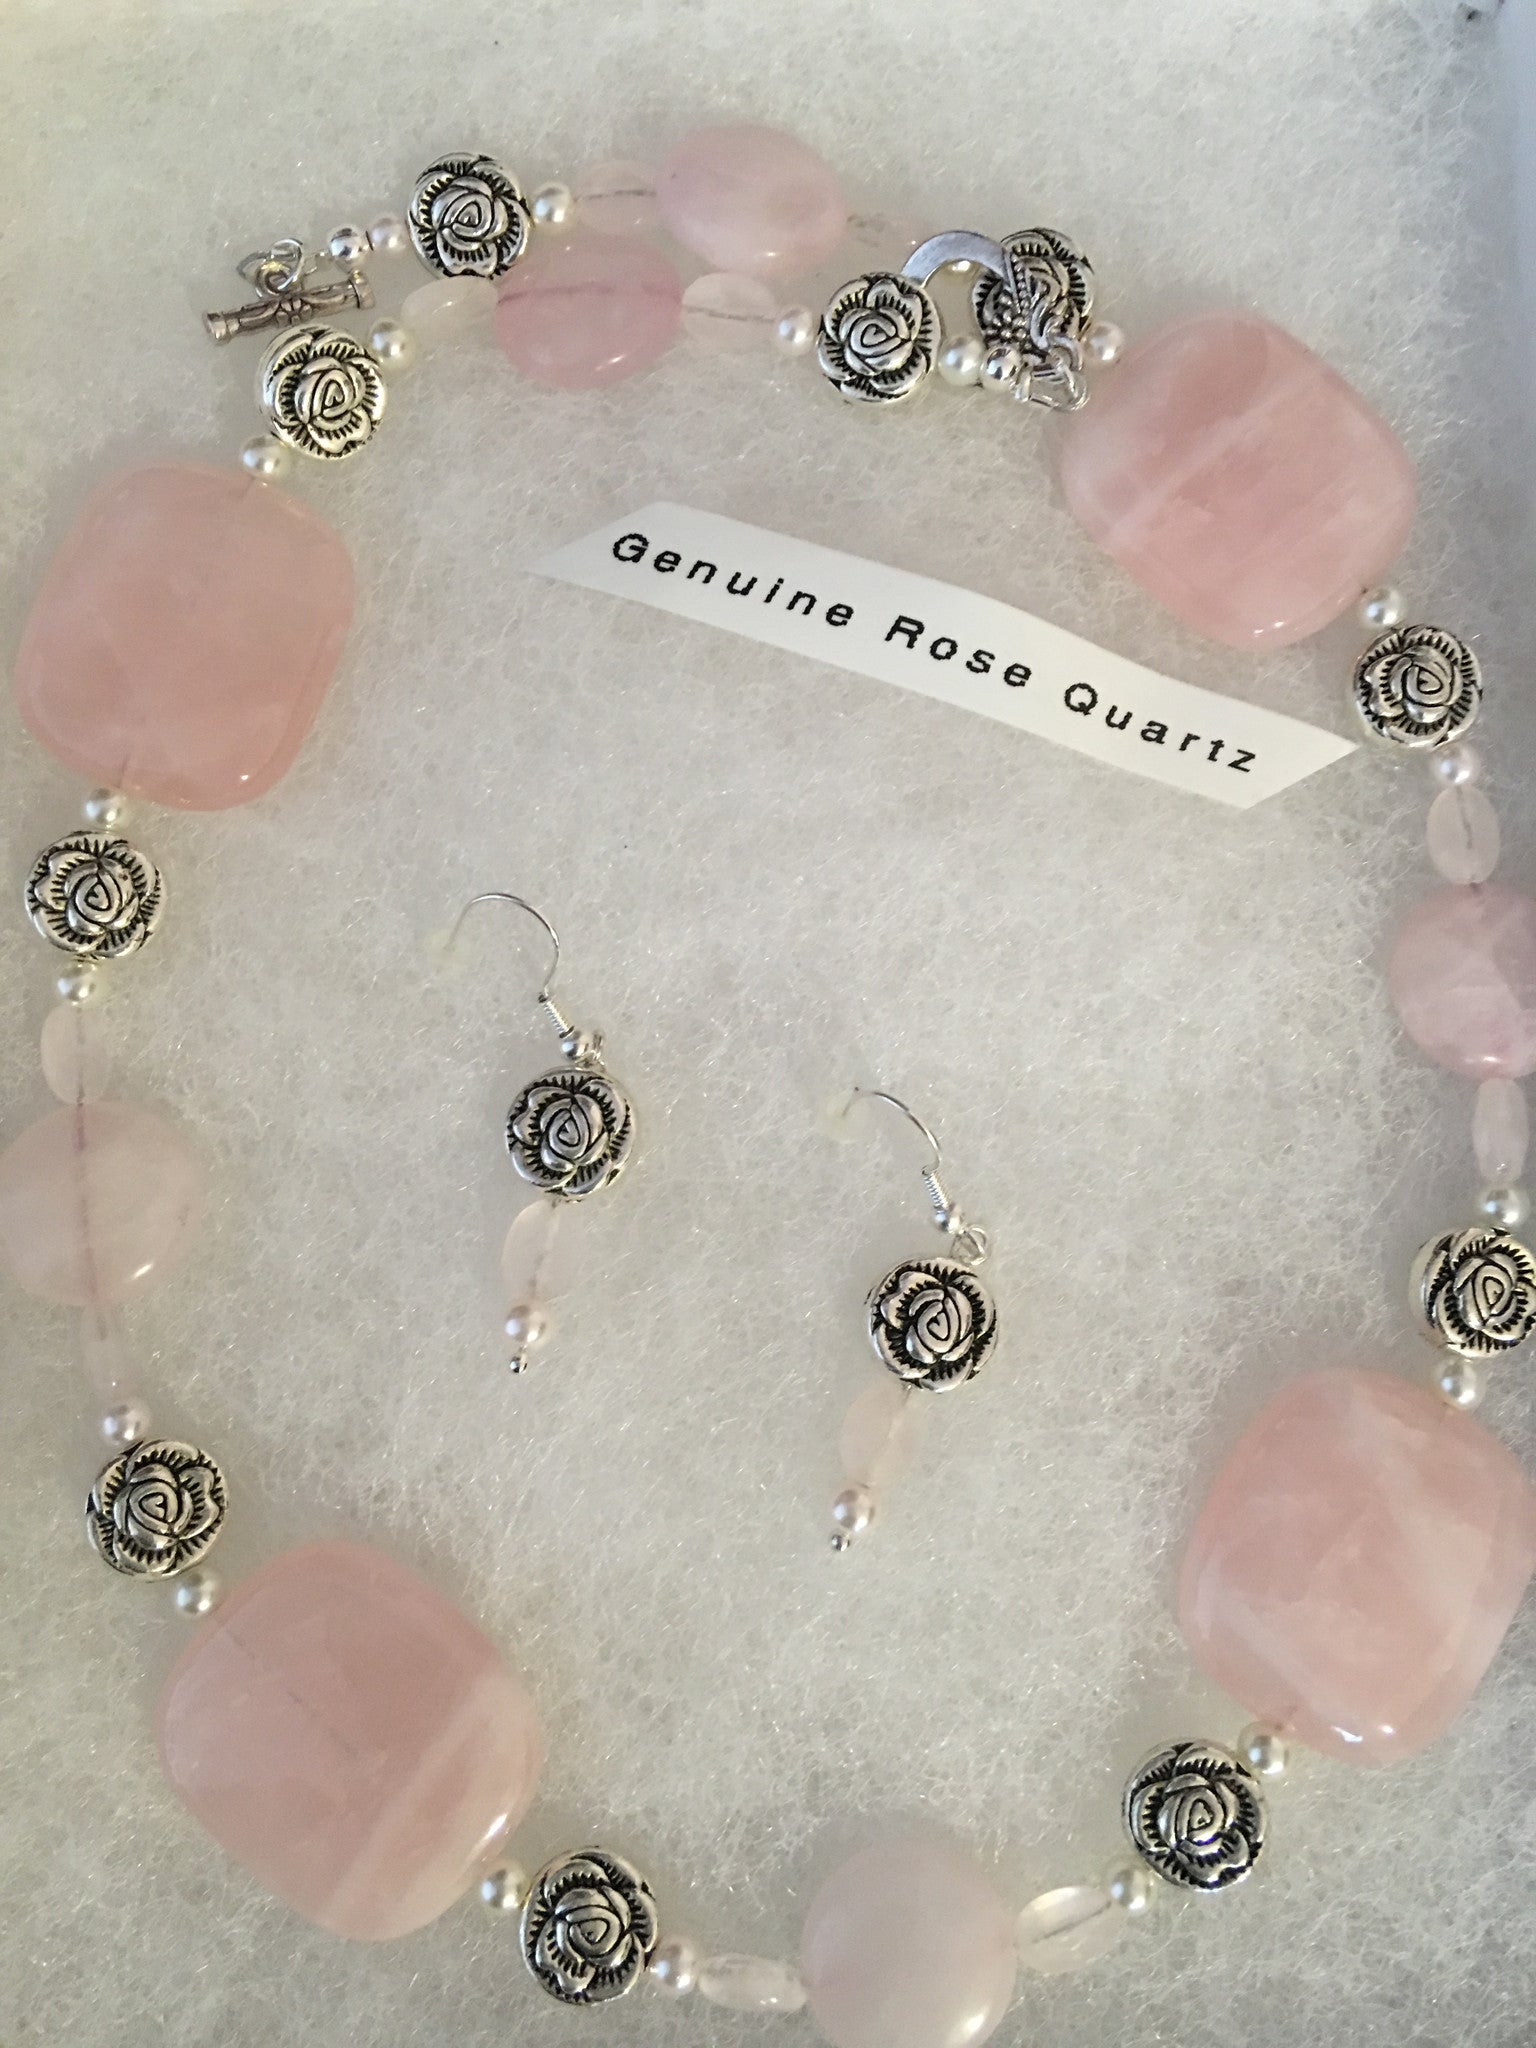 Genuine Rose Quartz Necklace & Earring Set.